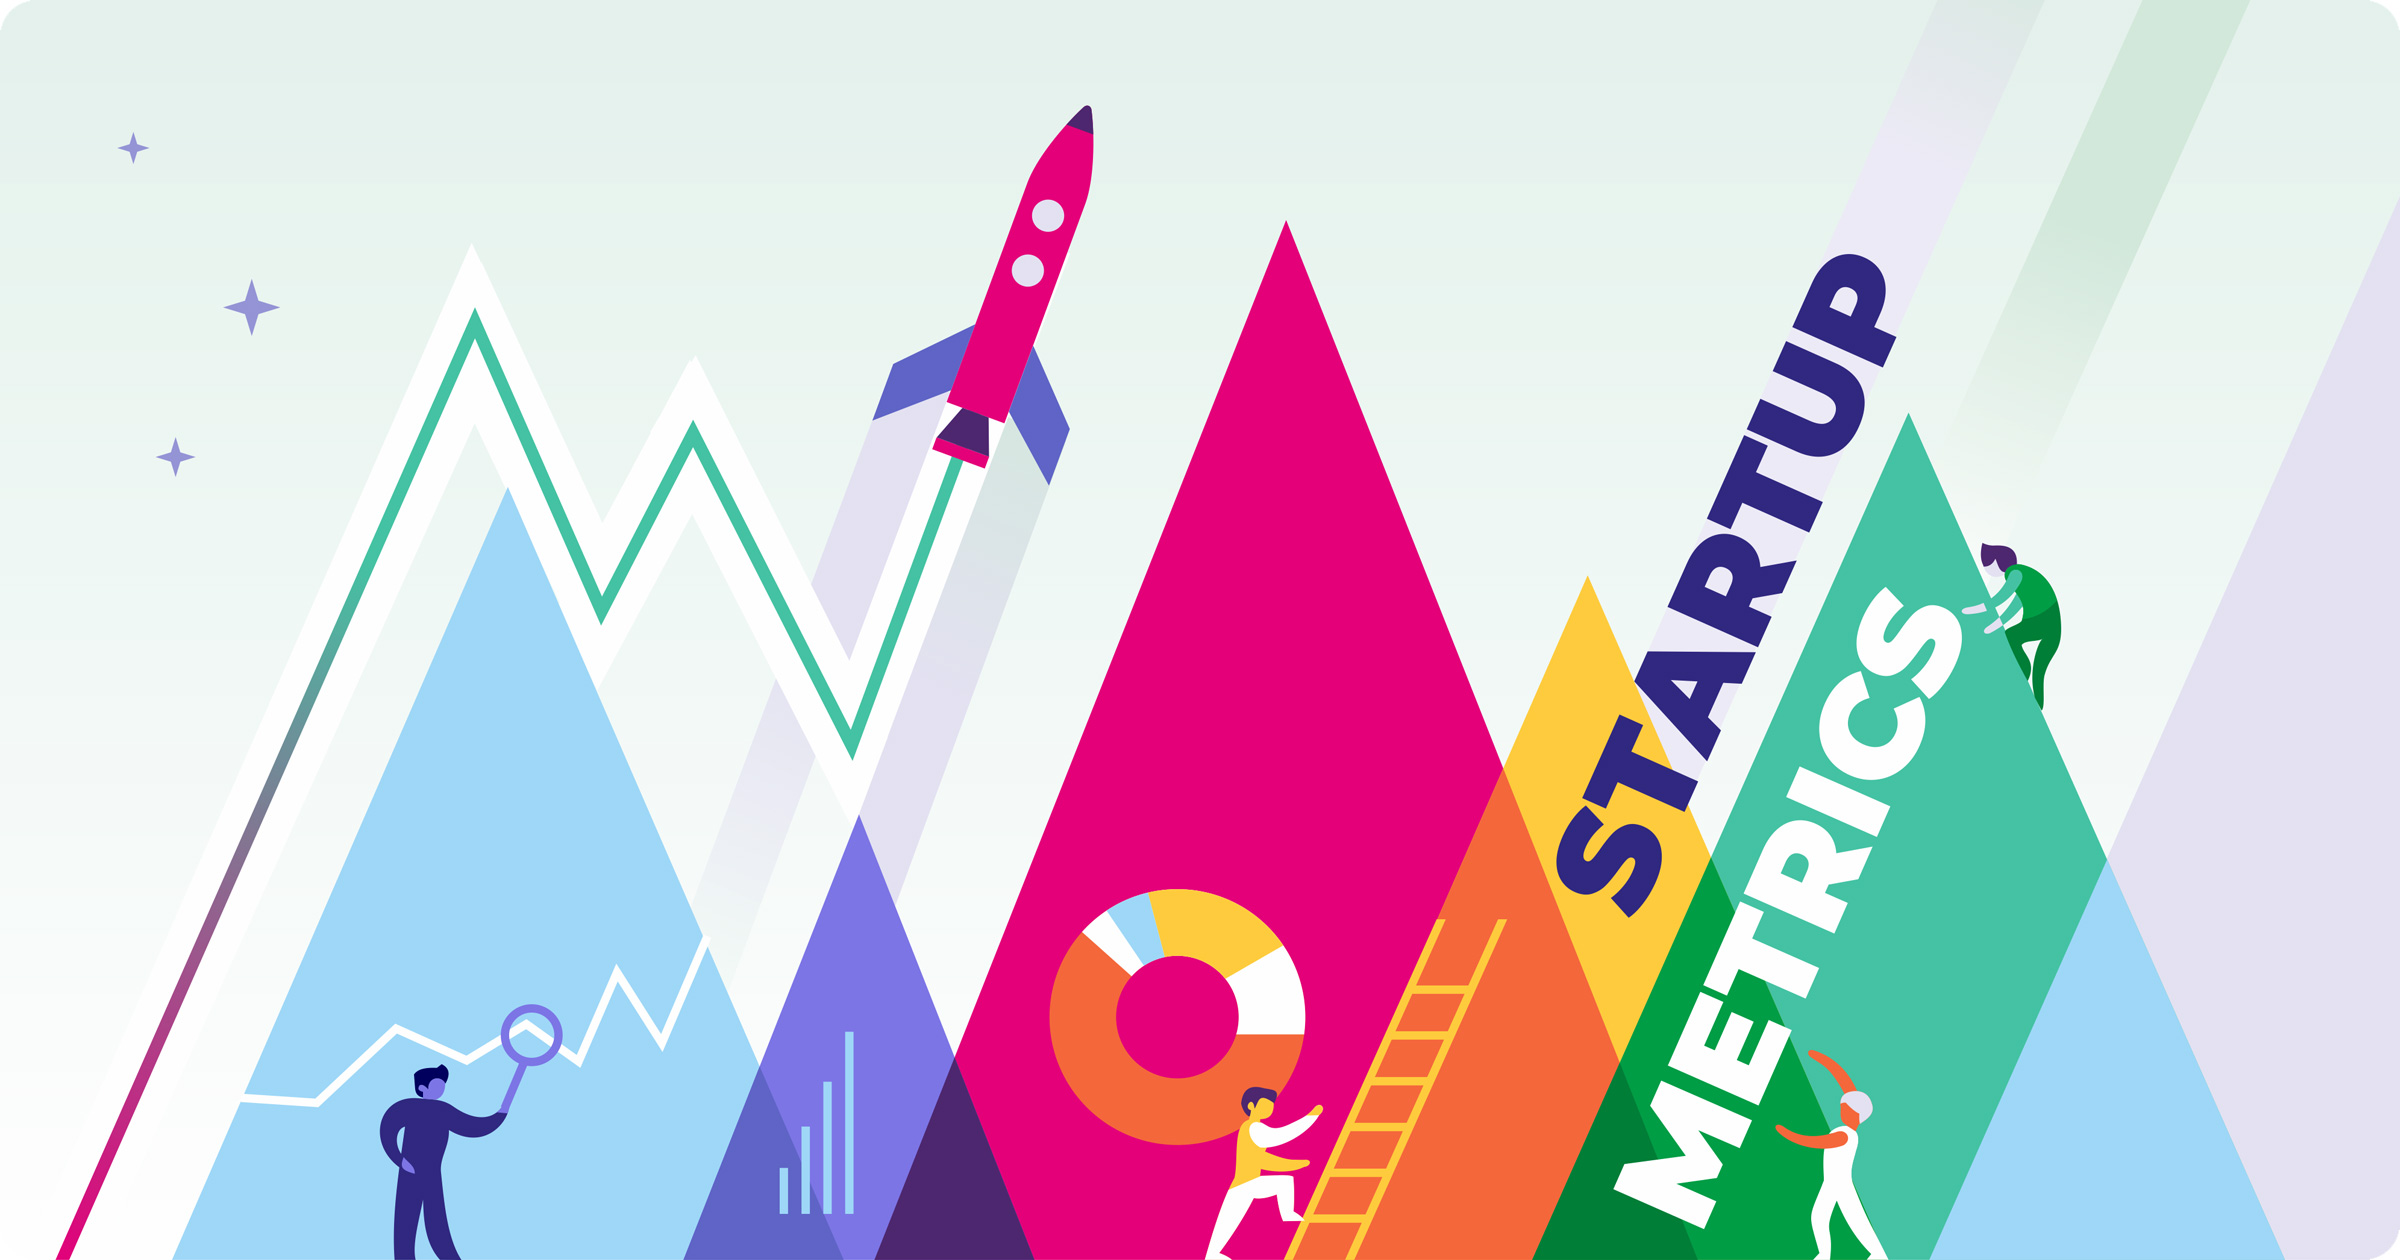 Startup KPIs: 5 metrics to track your product success